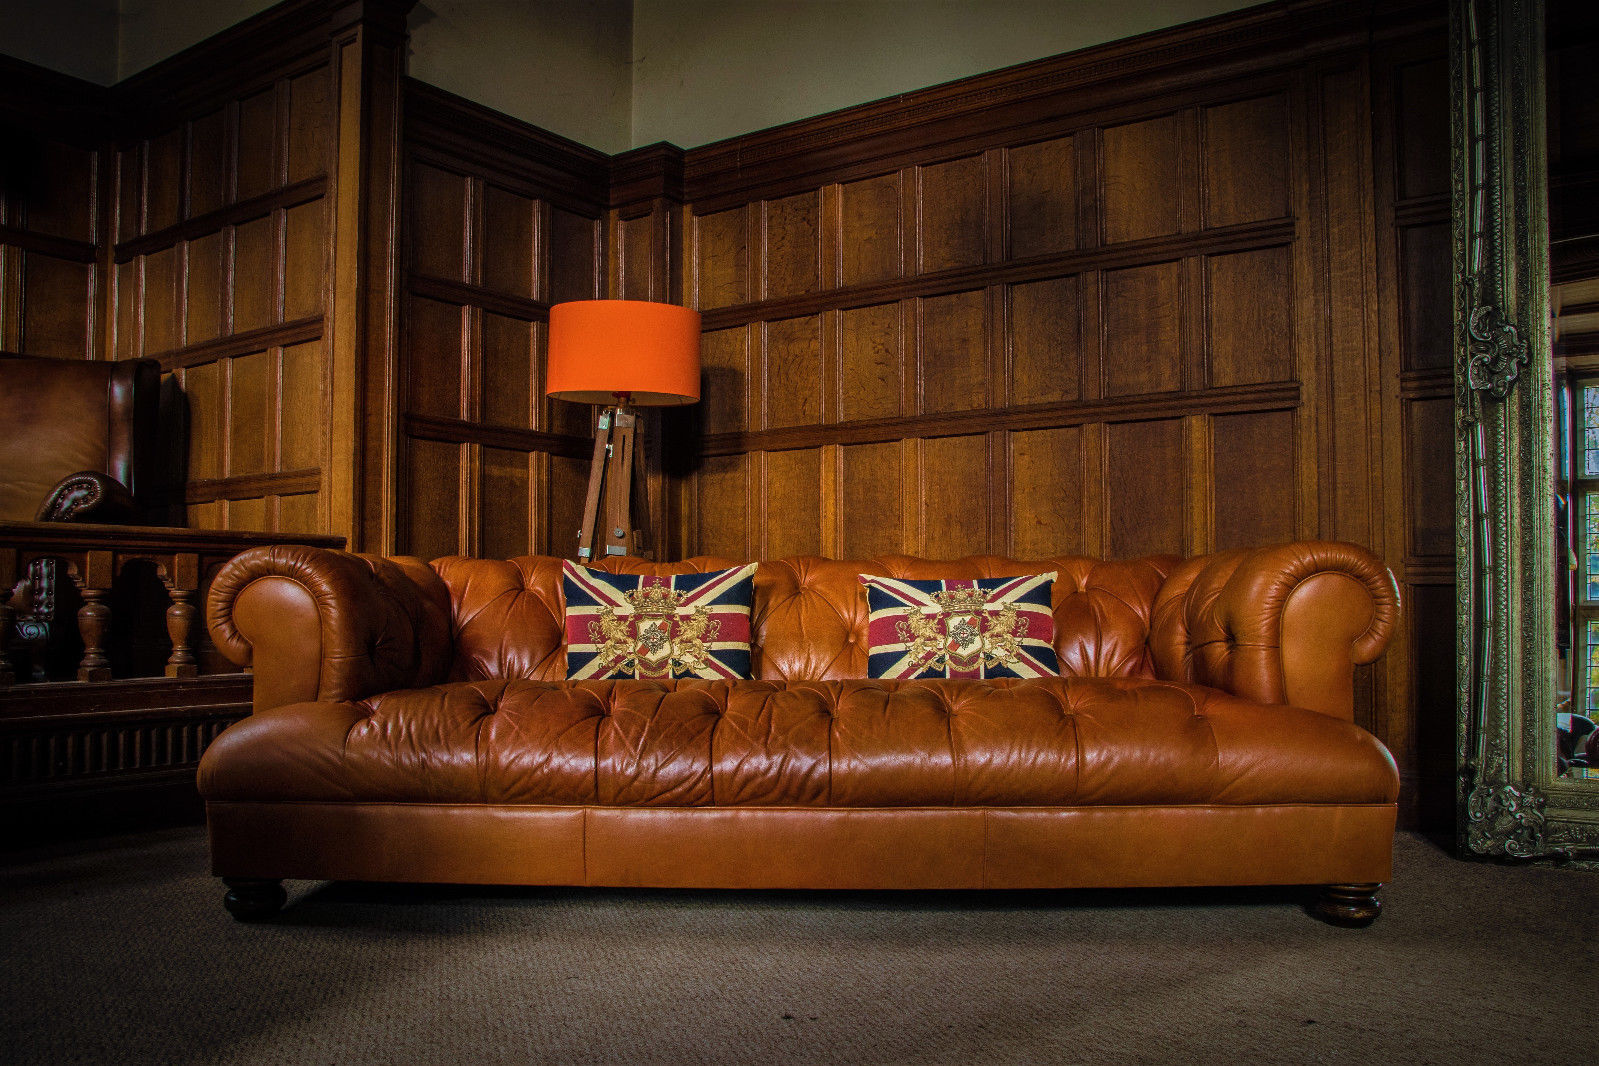 Astonishing F50 1140 Tetrad Grand Drummond John Lewis Tan Leather Chesterfield 3 4 Seater Club Sofa Forskolin Free Trial Chair Design Images Forskolin Free Trialorg